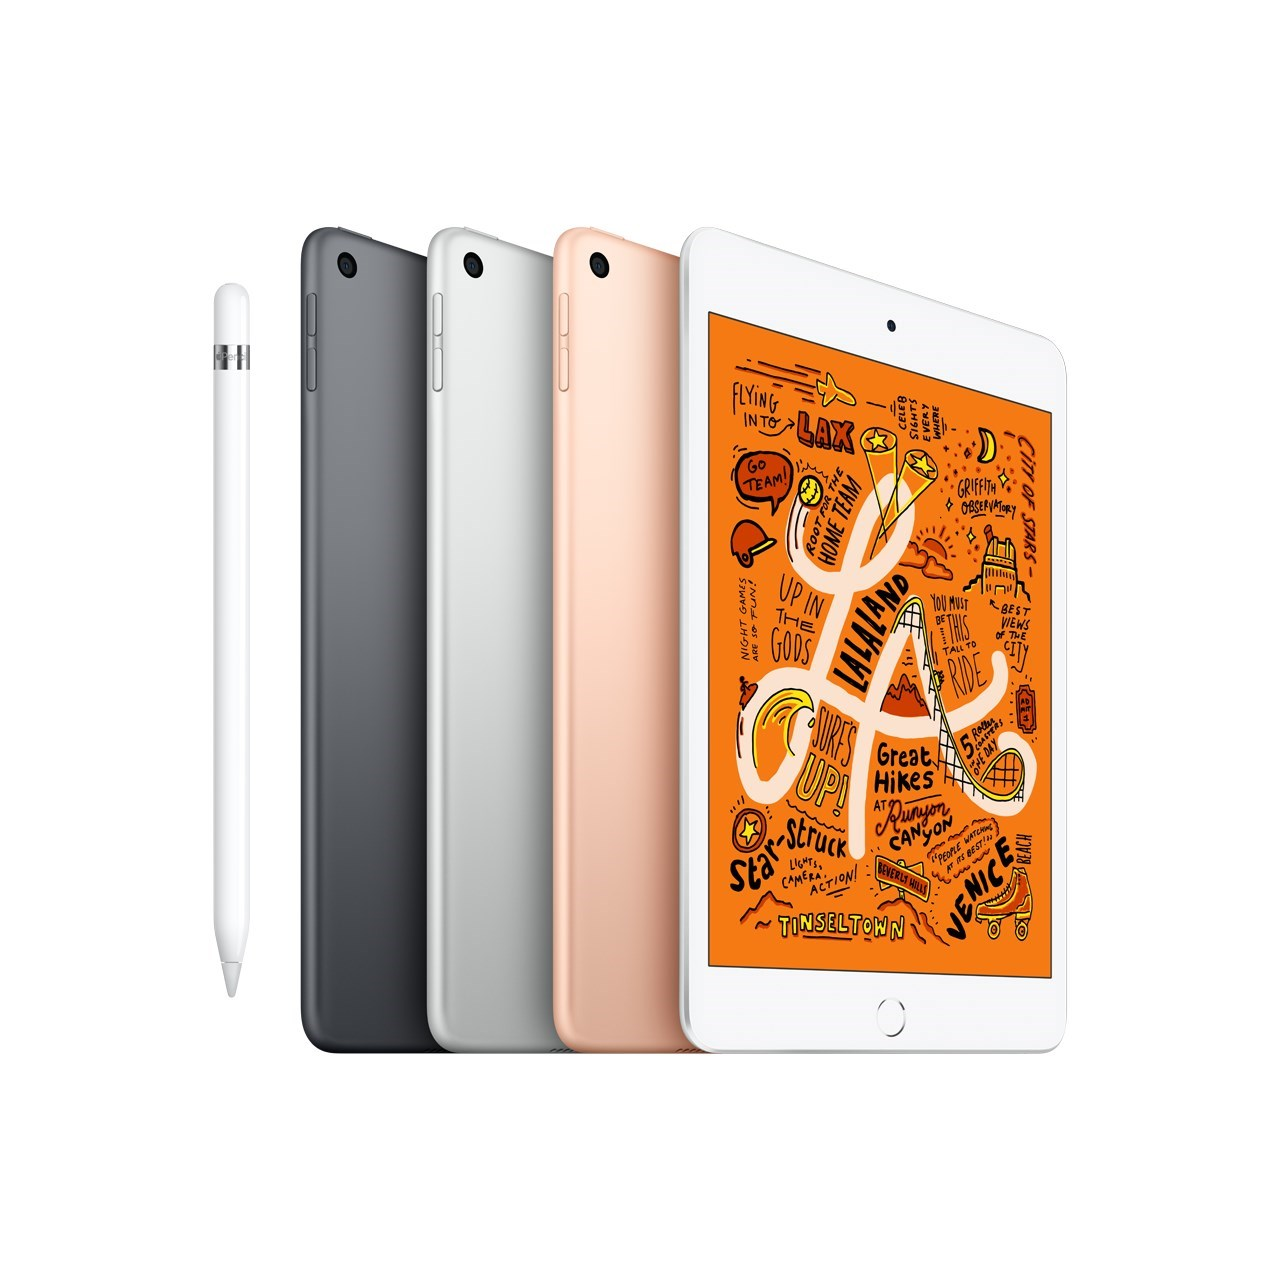 iPad mini (New)